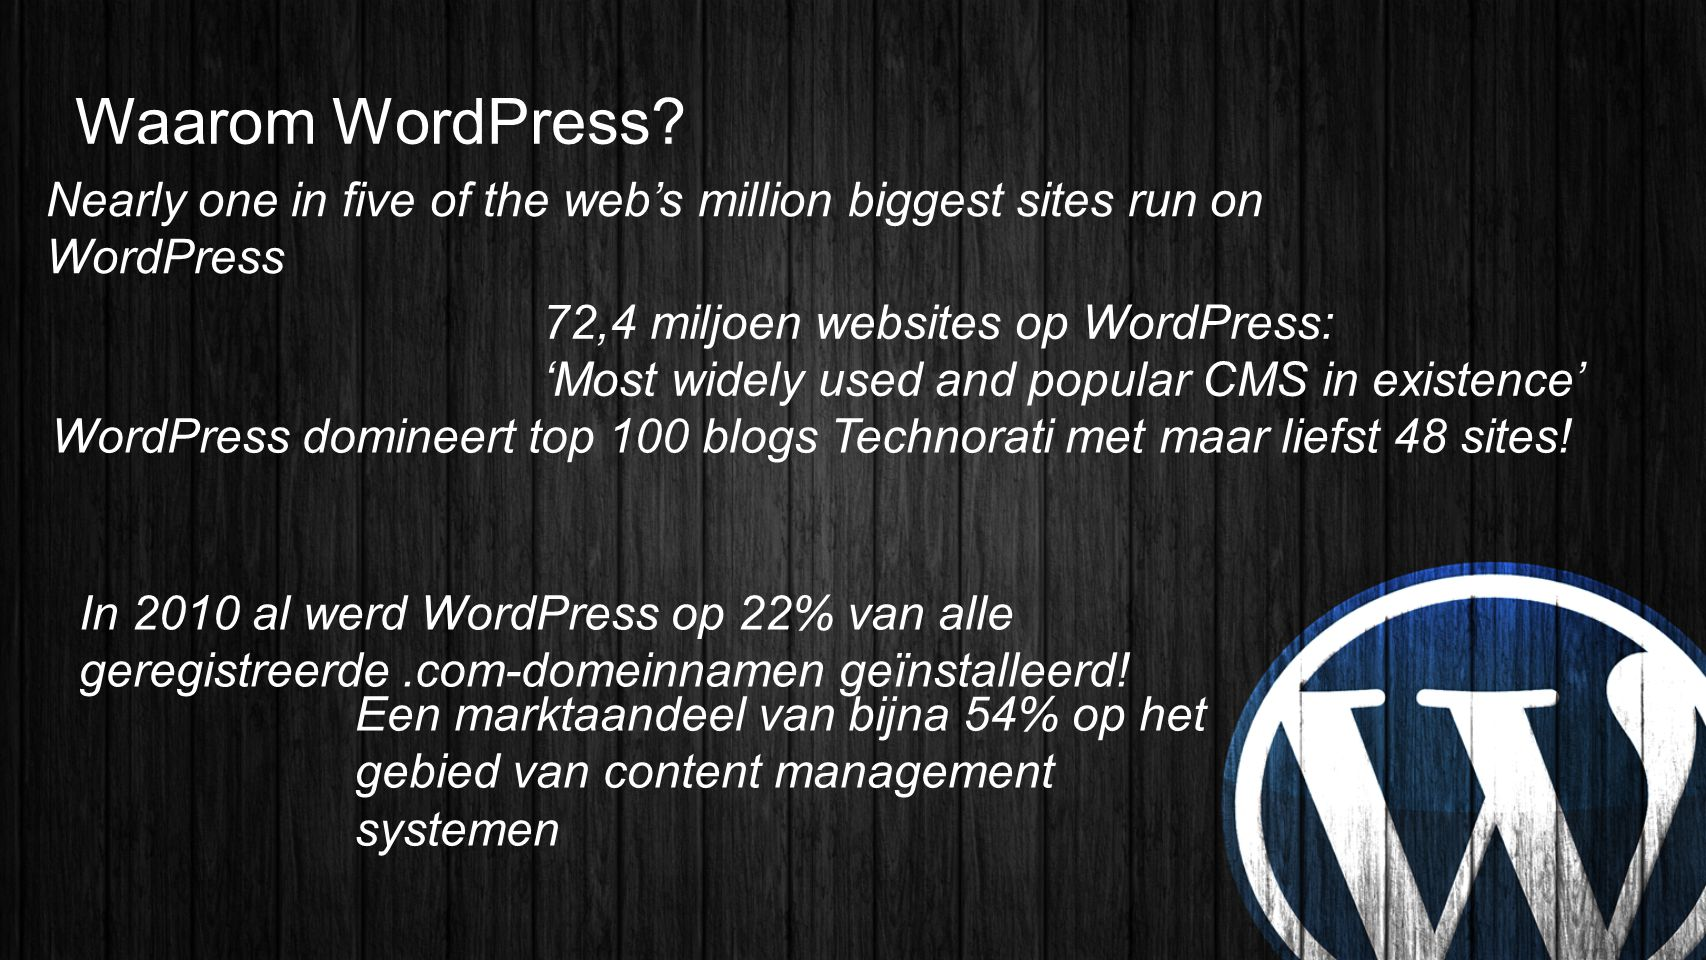 Waarom WordPress Nearly one in five of the web's million biggest sites run on WordPress.